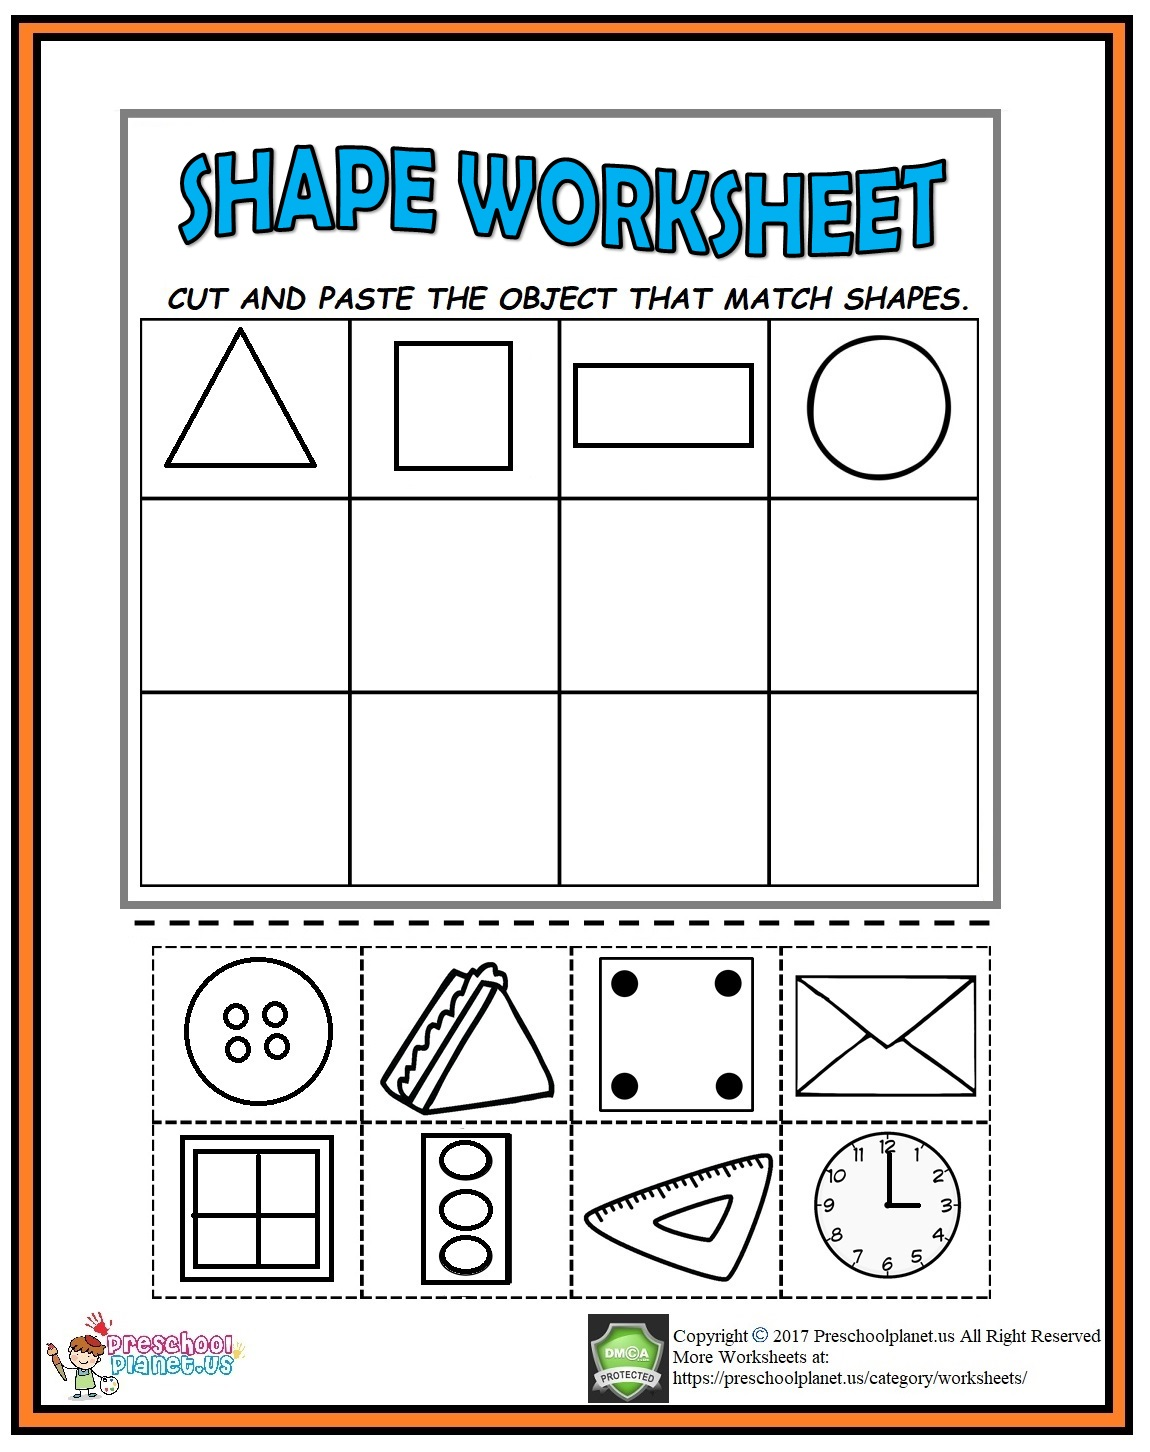 hight resolution of Cut And Paste Shape Worksheet – Preschoolplanet